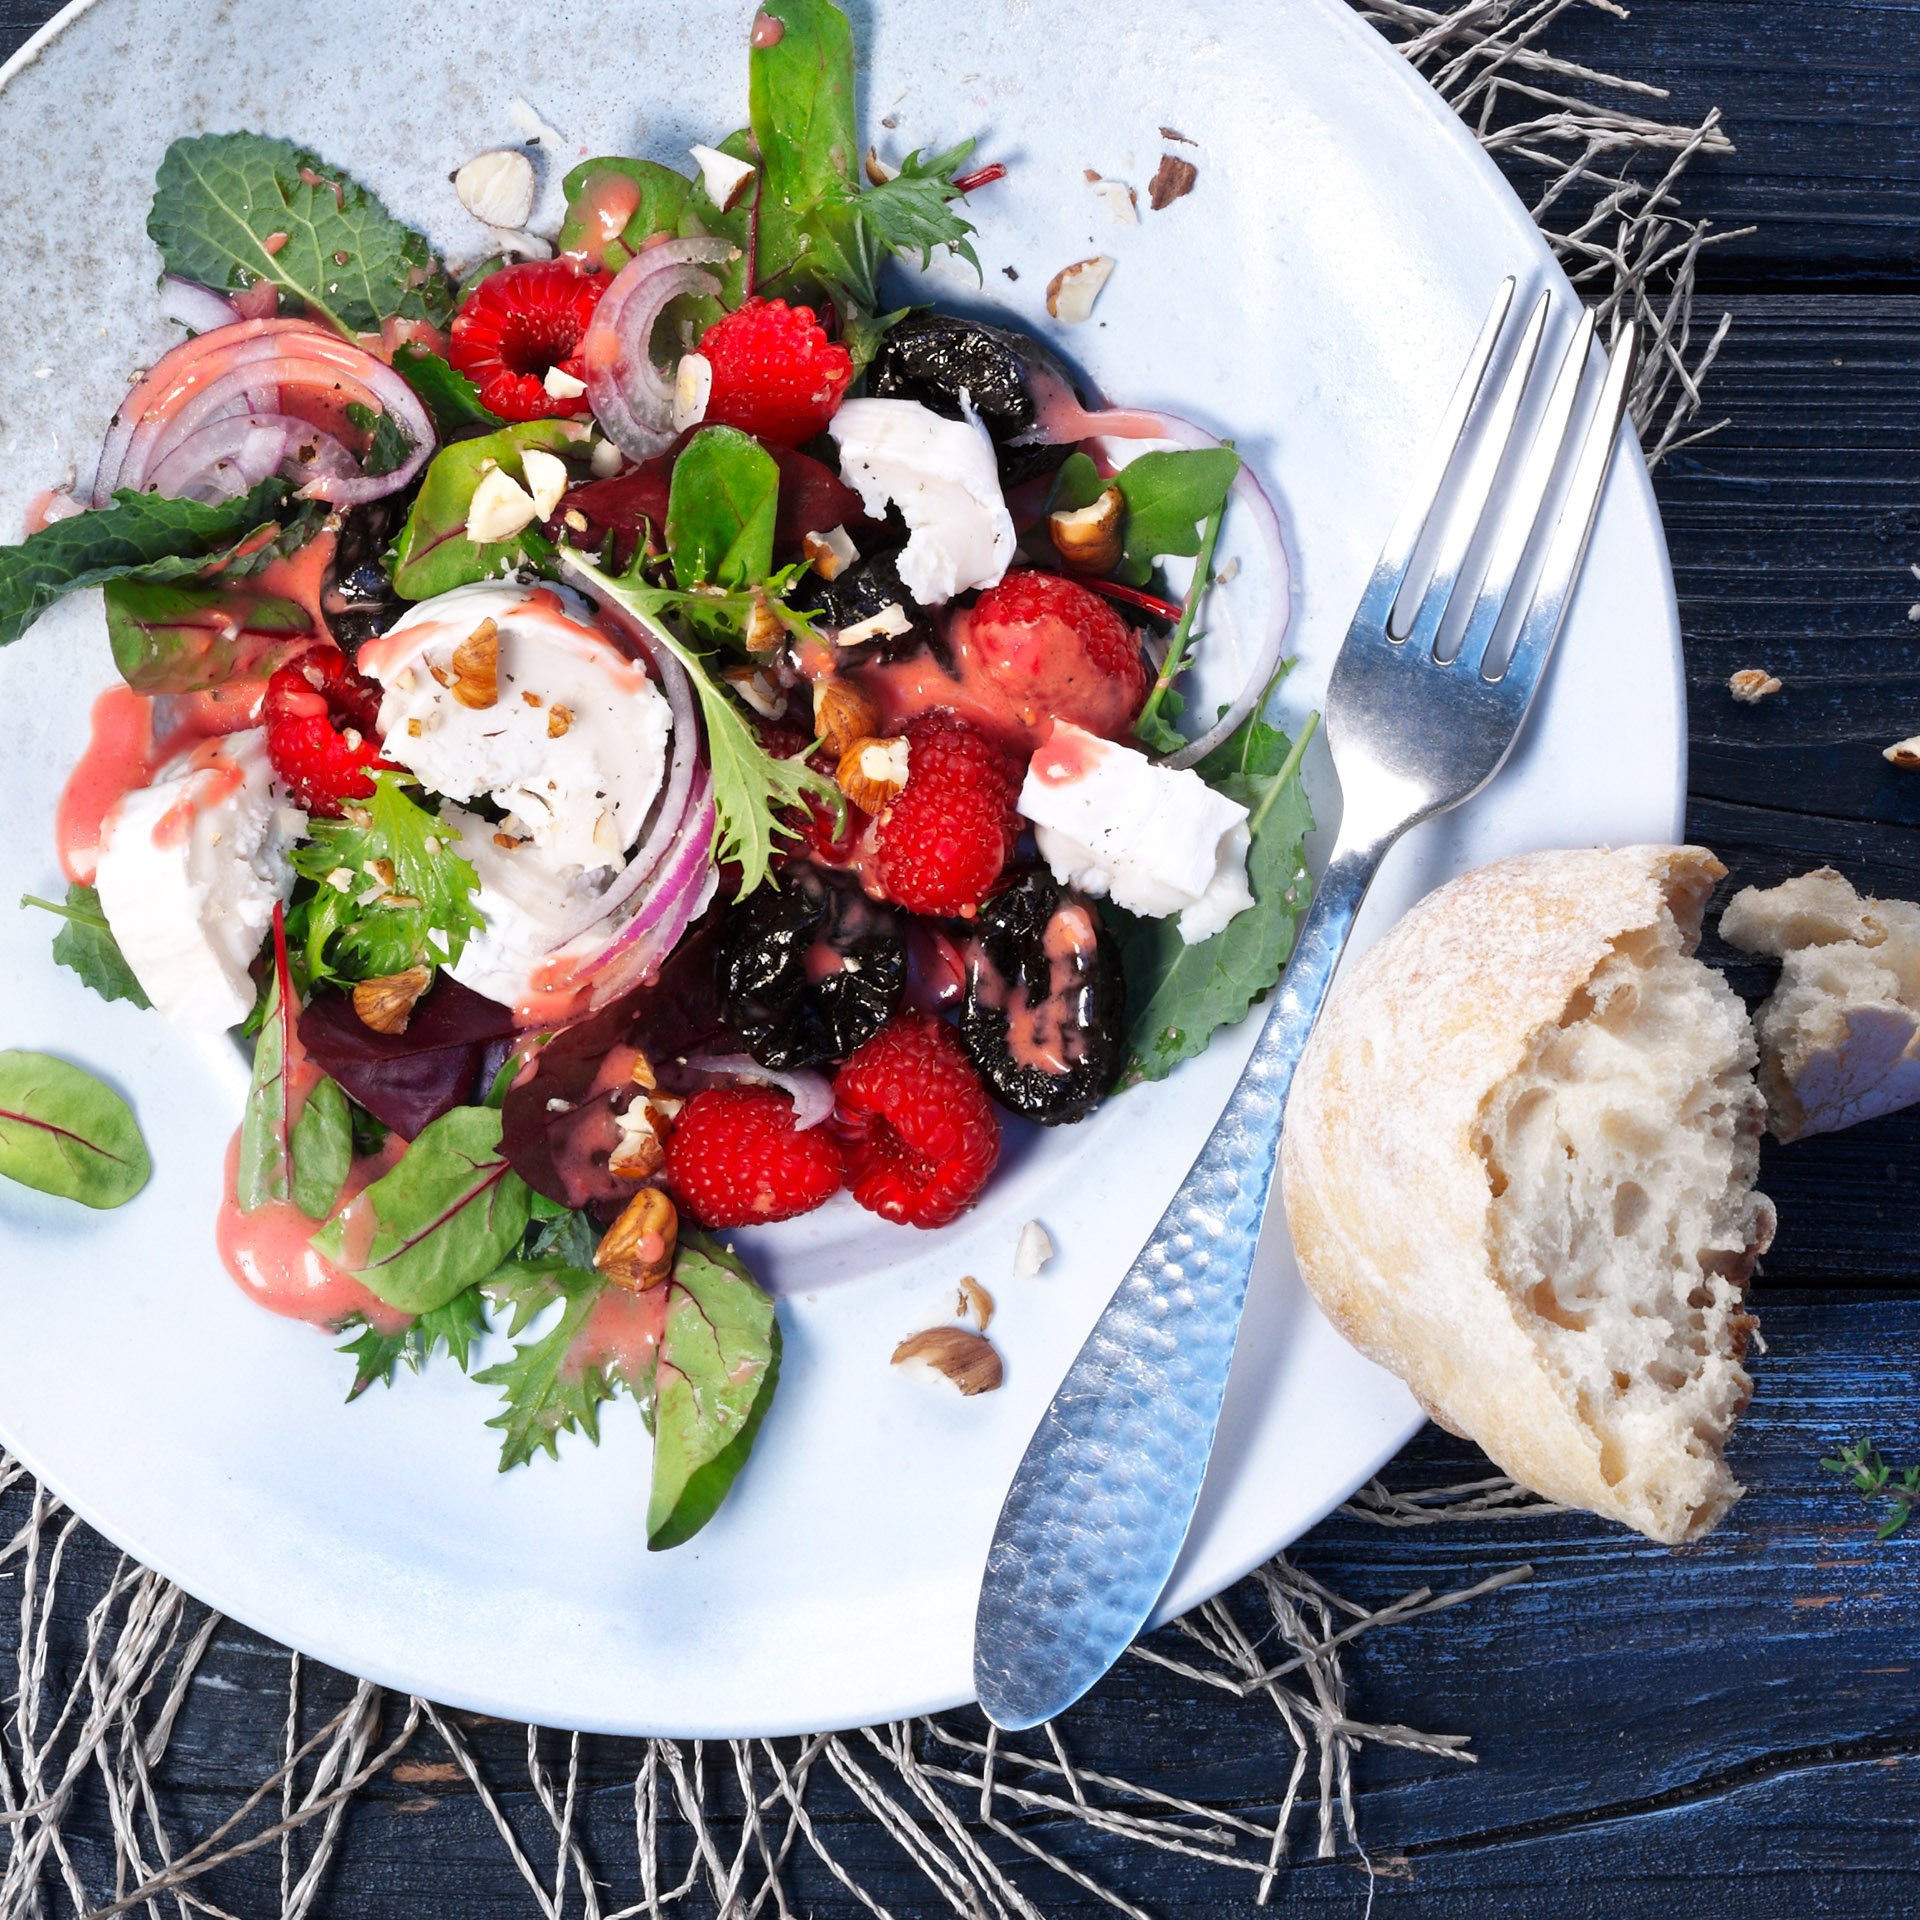 <p>Prunes and goat cheese are great together any time of the year. When making this salad in the winter, use roasted, diced beets in place of raspberries. 309 kcal (1293 kJ); protein 9.3 g; fat 17.3 g; carbohydrates 27.2 g</p>